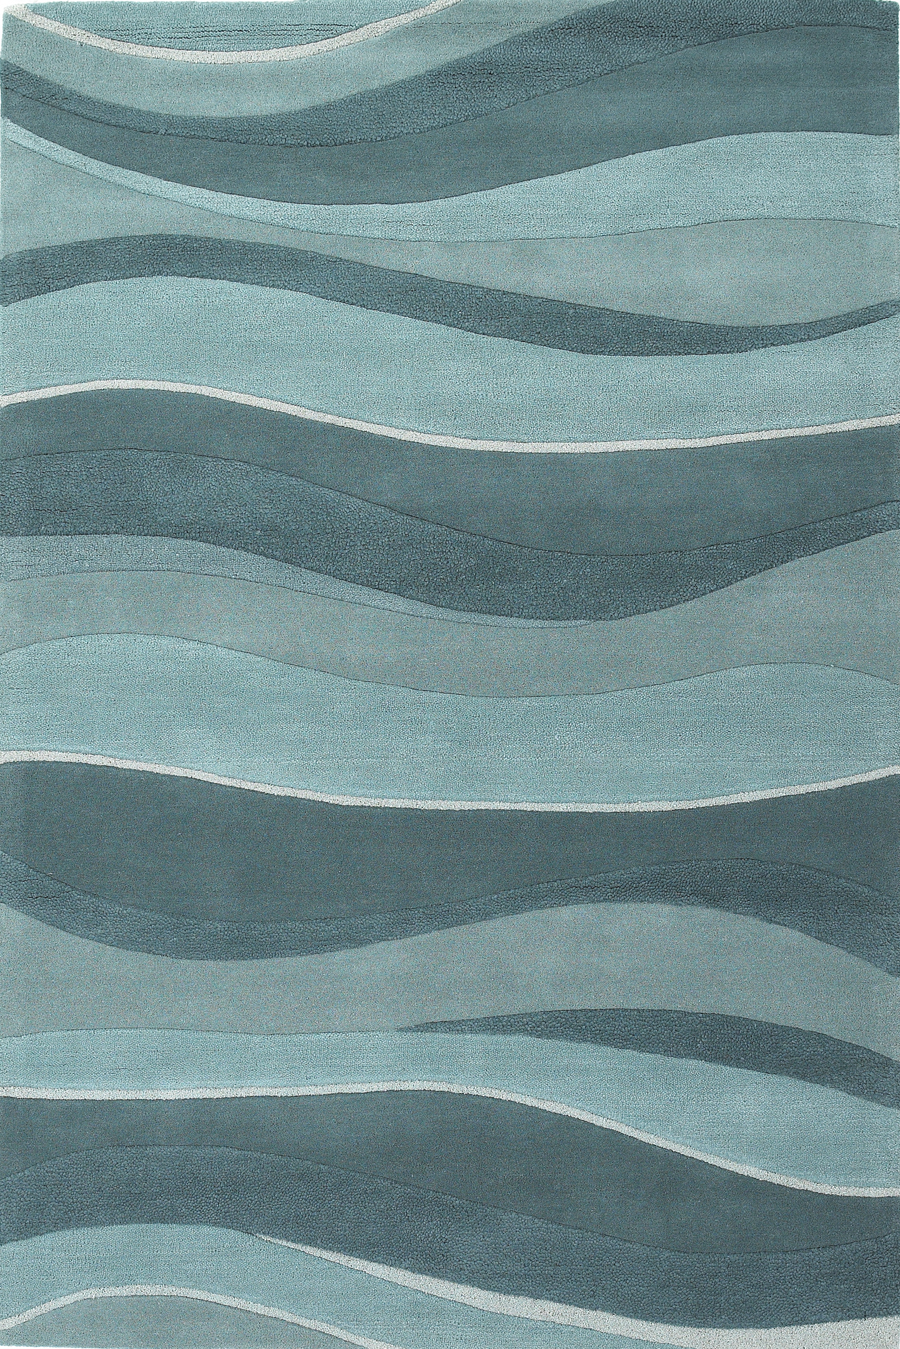 Eternity Landscapes 1053 Ocean Rug by Kas